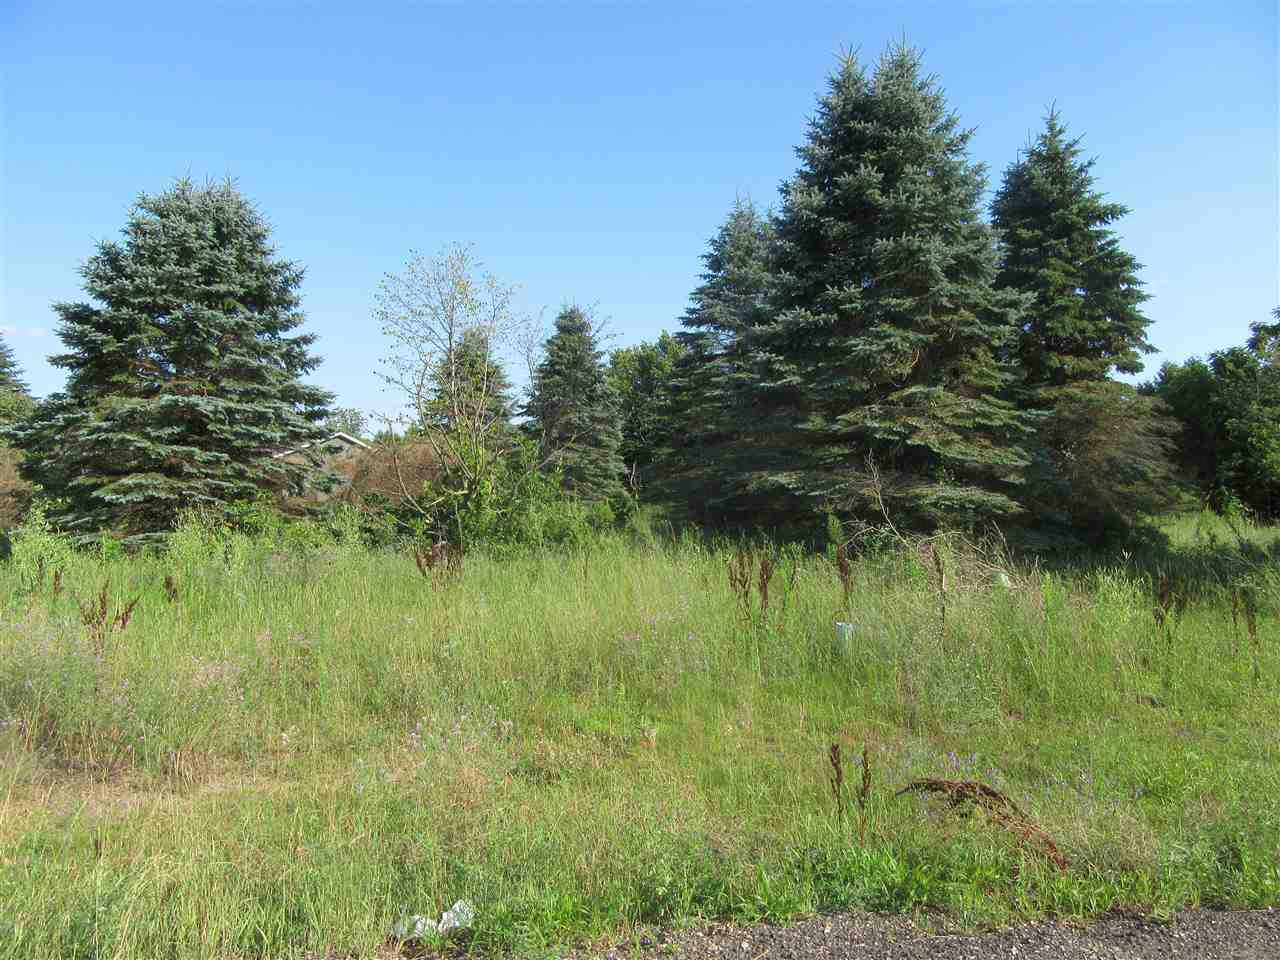 If you've been wanting to build a new home in a great Subdivision this is it! Lots 32 and 33 are available in the almost full Village Wood Pointe in Plover. Semi wooded lots are on a quiet cul-du-sac. All utilities are at the lot line. Take this opportunity to build your dream home with any builder you choose. Call today for a map and covenants.